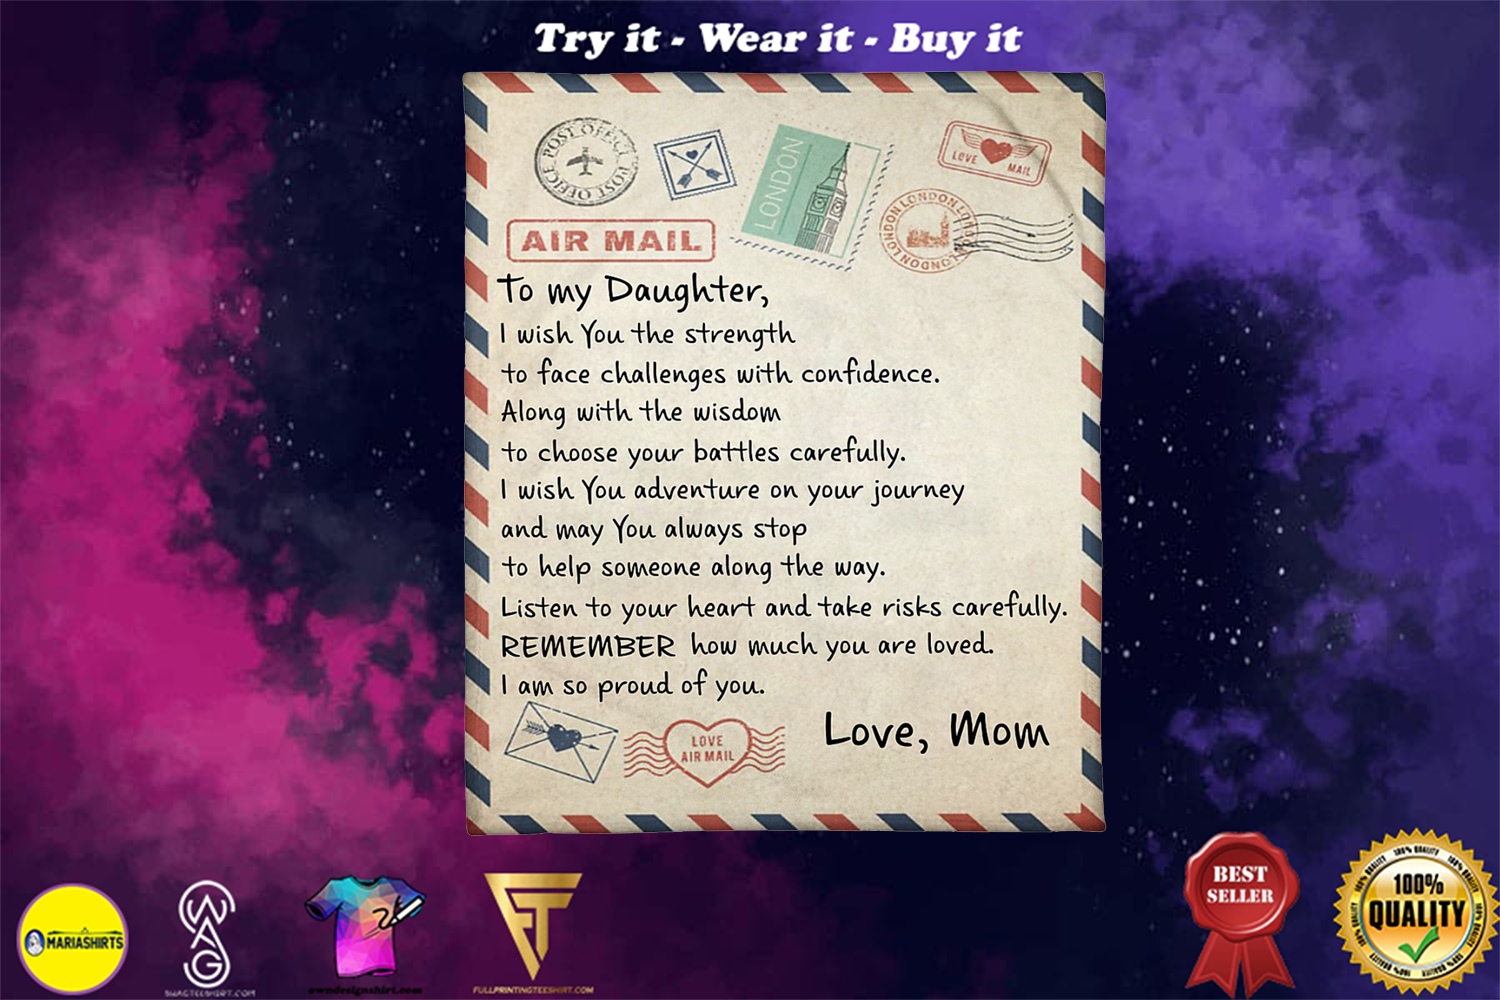 air mail to my daughter i wish you strength love mom blanket - Copy